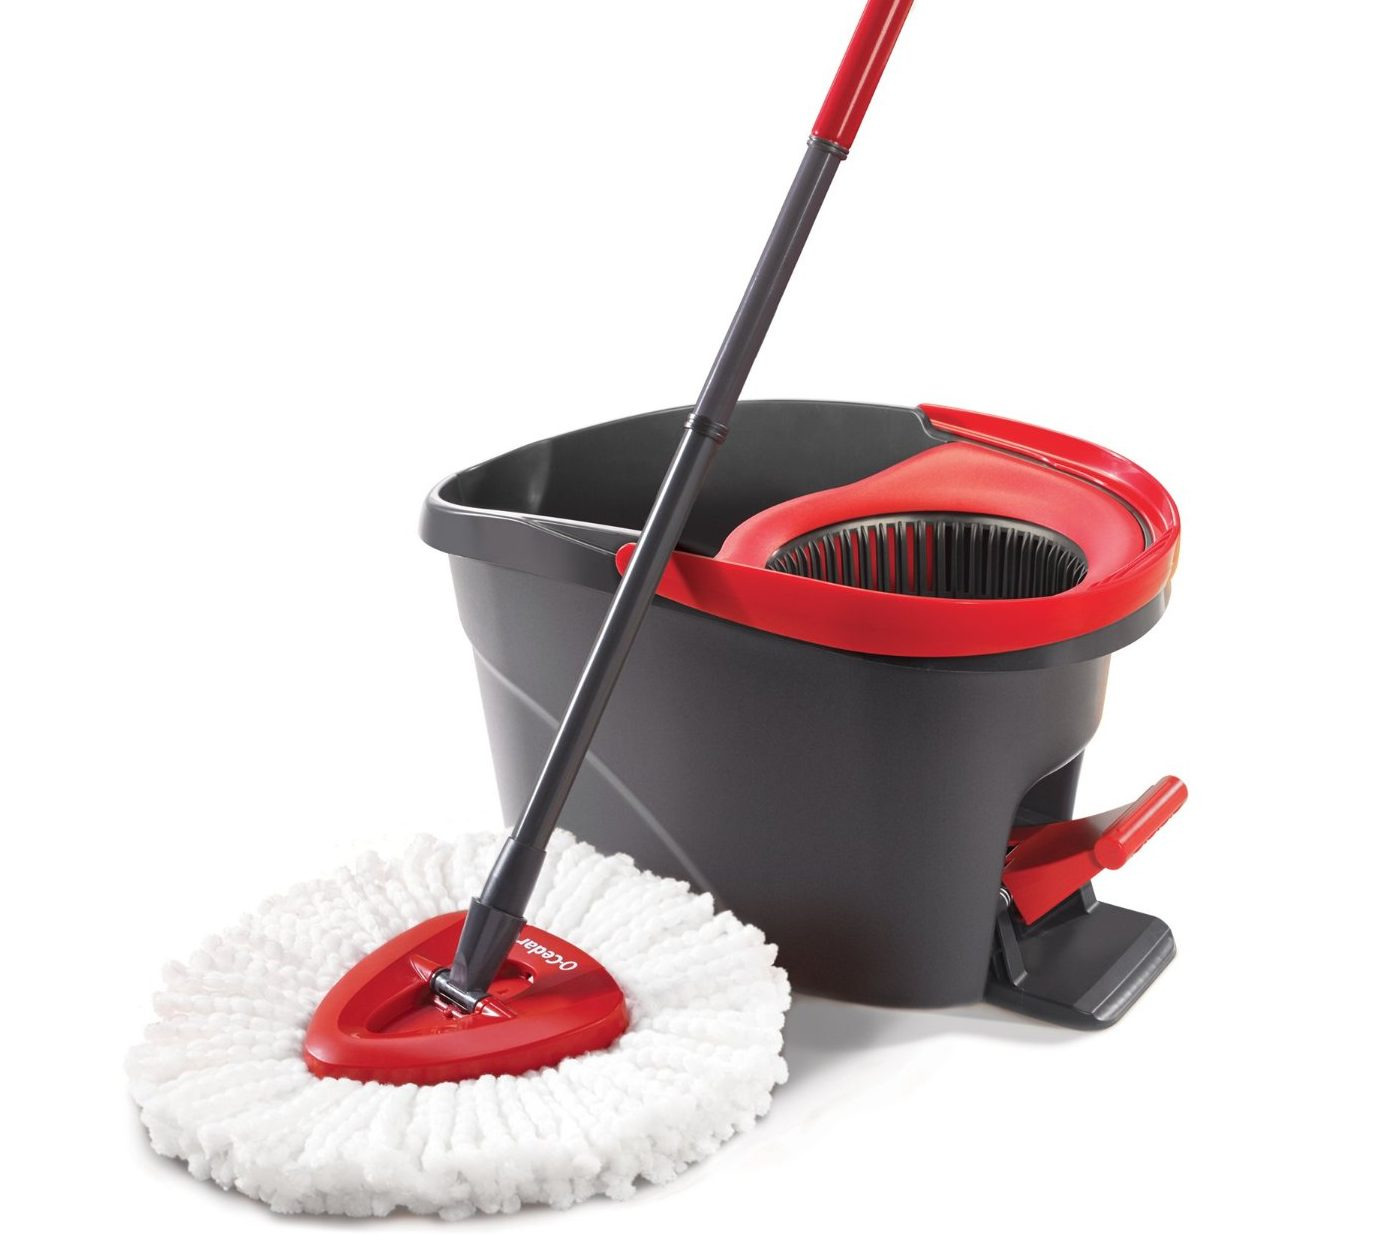 Top 10 Best Spin Mops in 2018